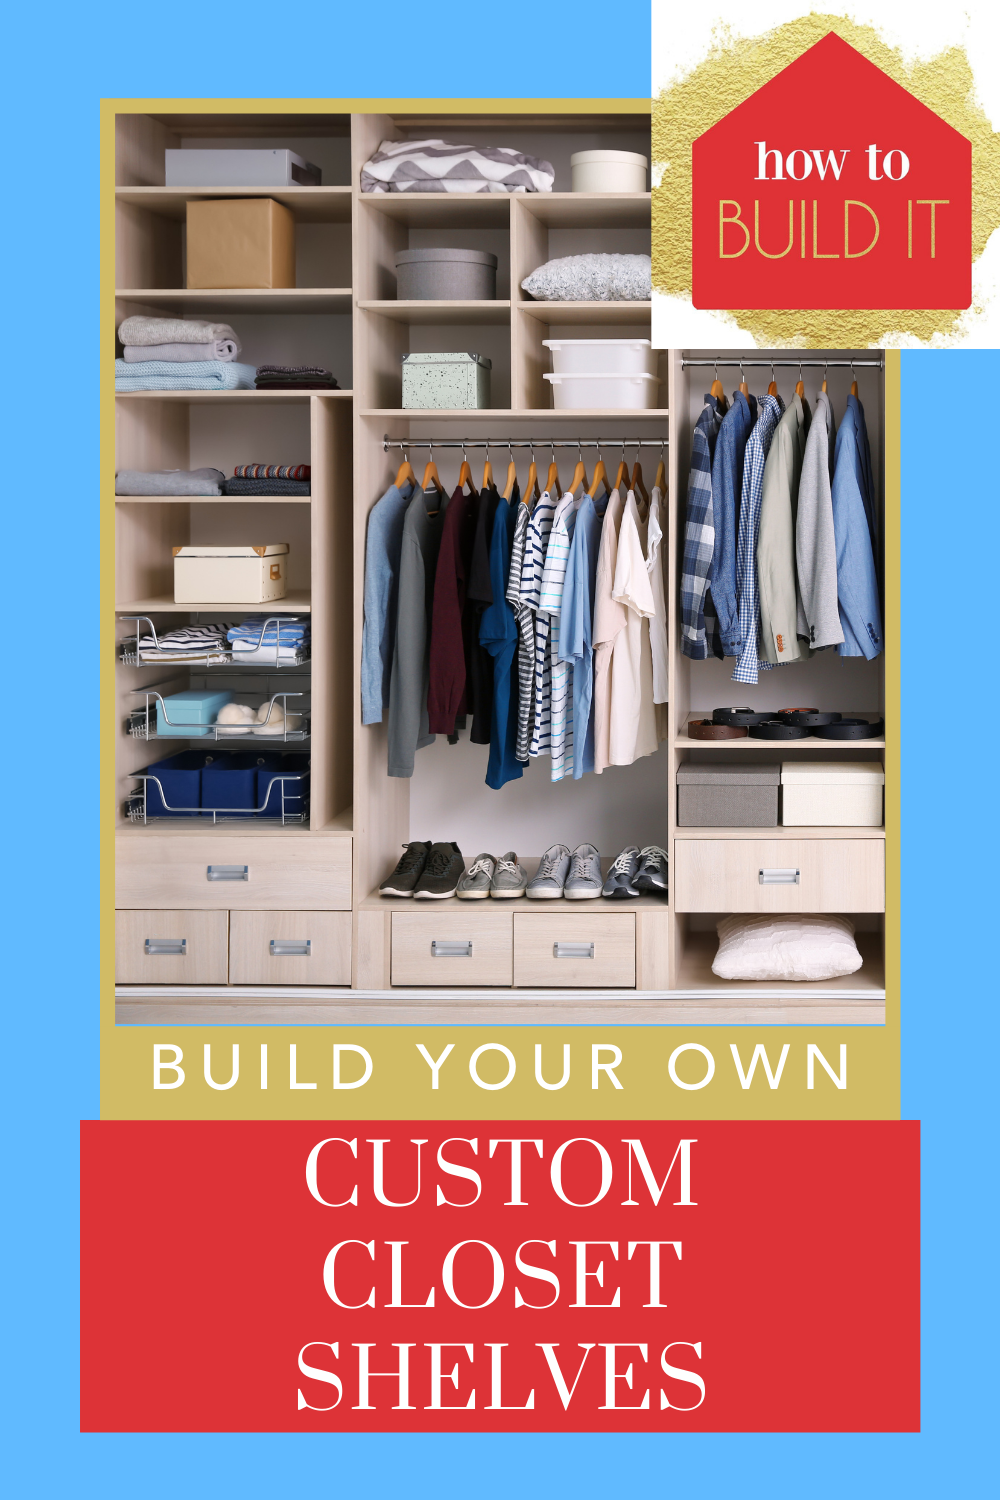 Howtobuildit.com will make you into a certified handyman! Learn how to make custom shelving to clean up your home! Find out how to save money and make your own closet shelves to finally clear up all that clutter!